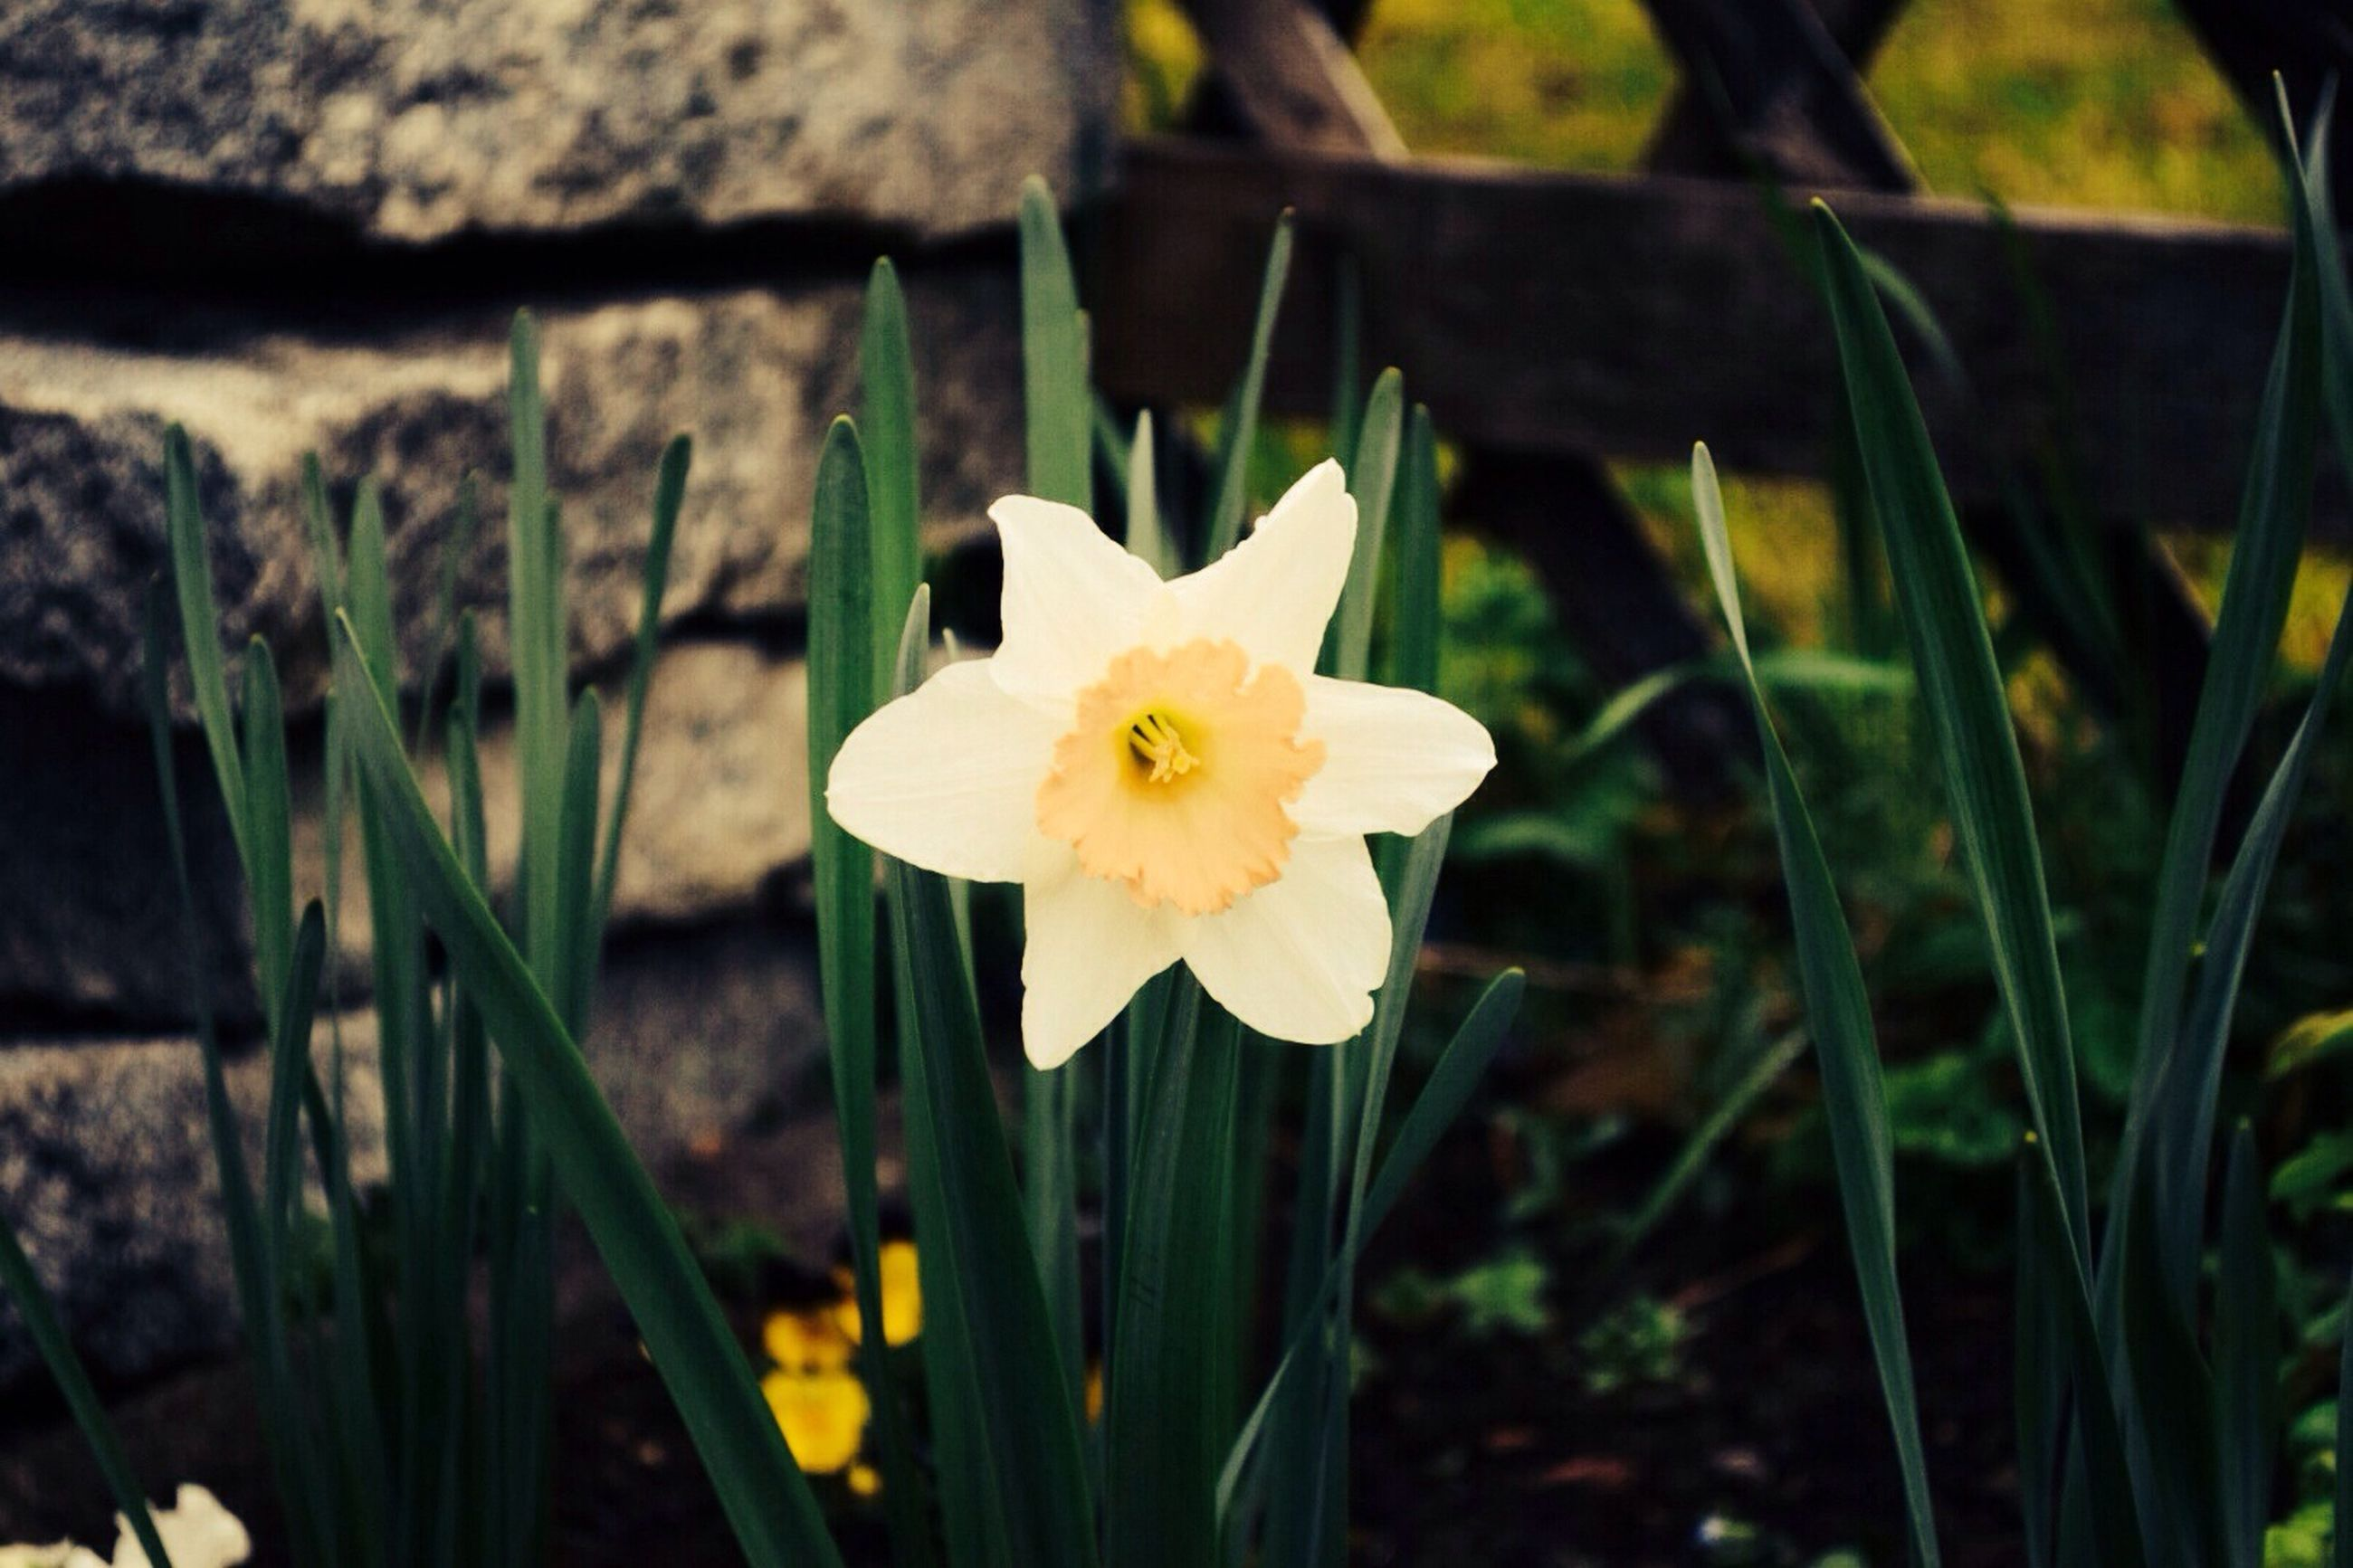 flower, petal, freshness, flower head, fragility, growth, beauty in nature, yellow, blooming, focus on foreground, close-up, field, nature, plant, single flower, pollen, in bloom, stem, daffodil, day